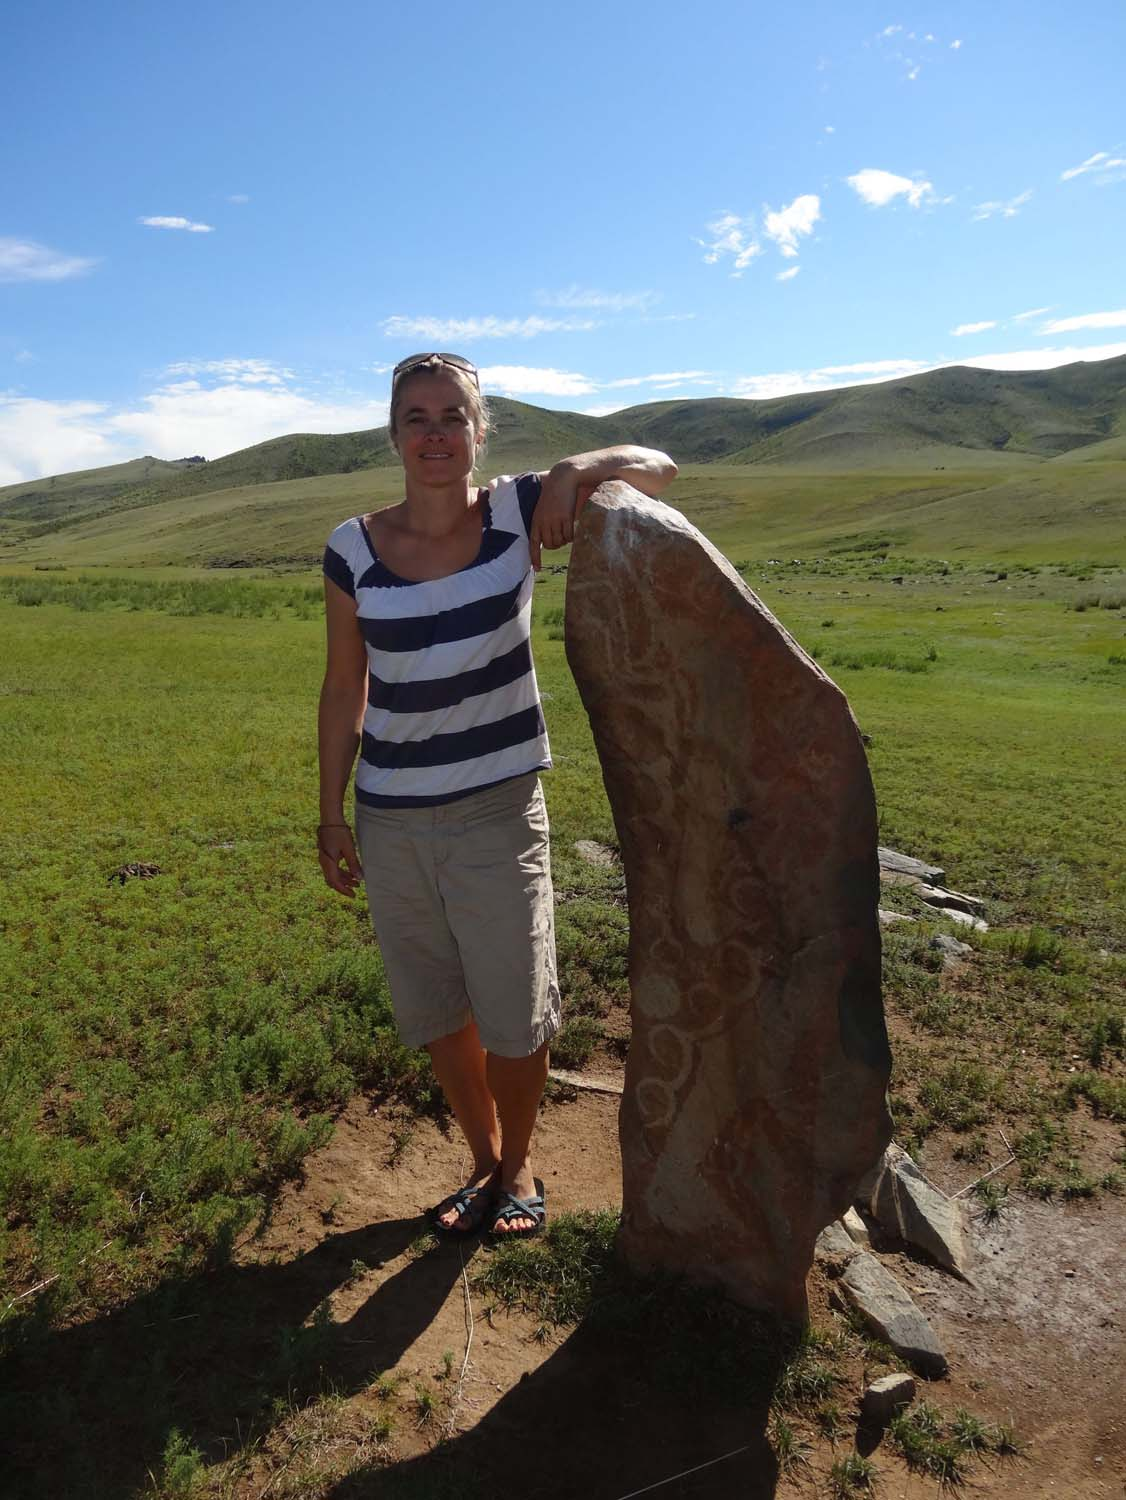 one of many deer stones in Mongolia, not many remain in situ, most have been carted off to various musea